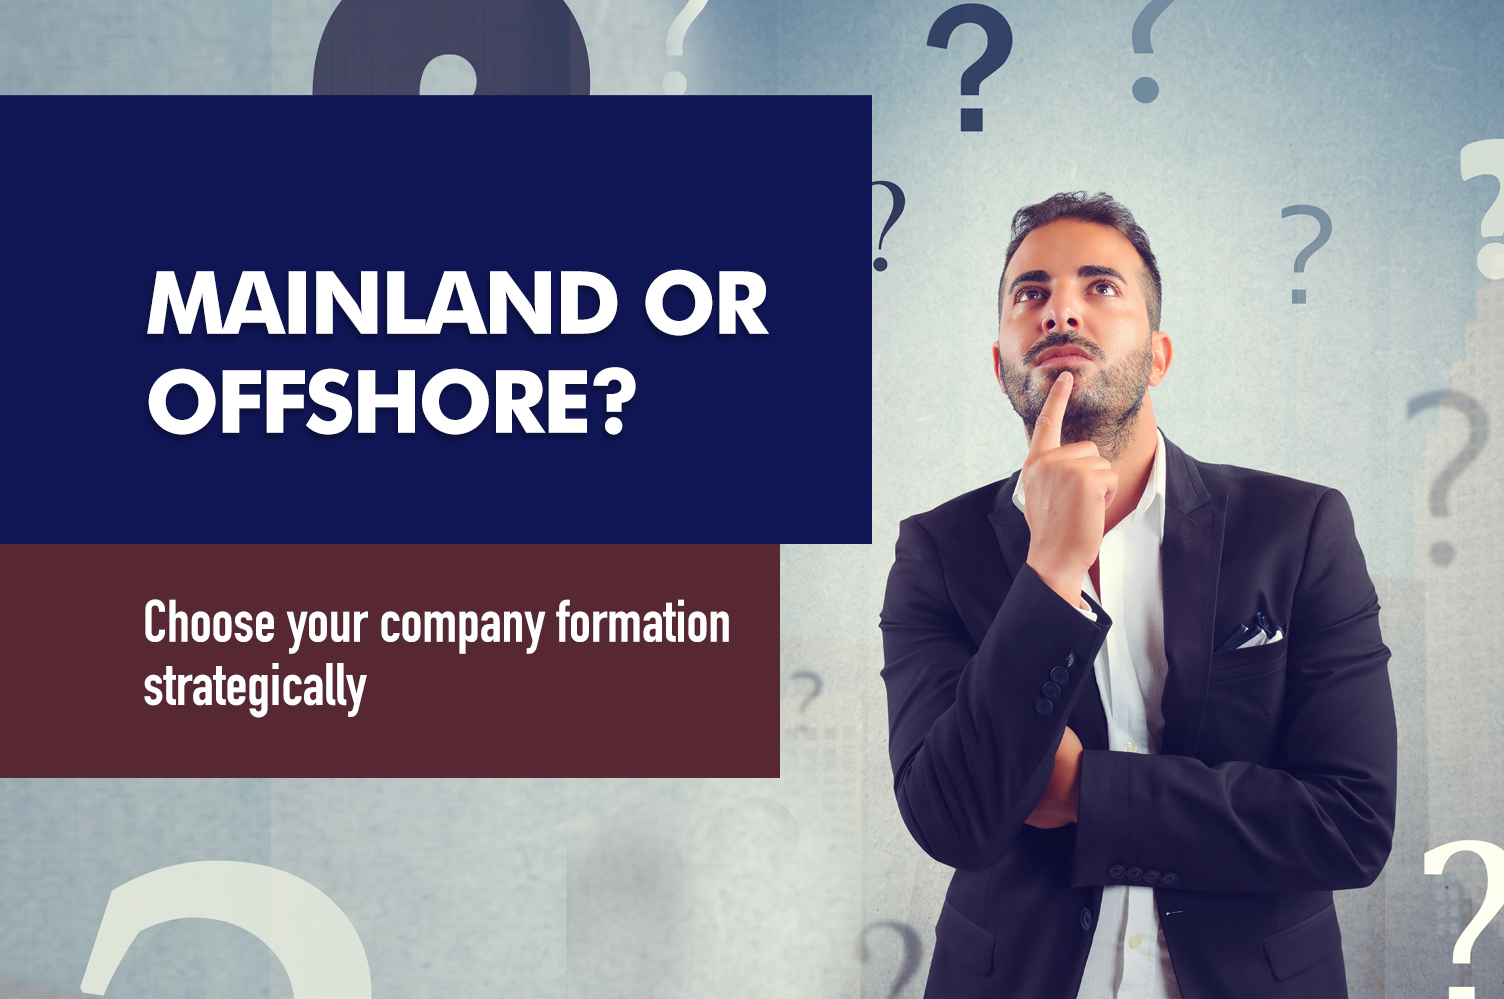 MAINLAND OR OFFSHORE?